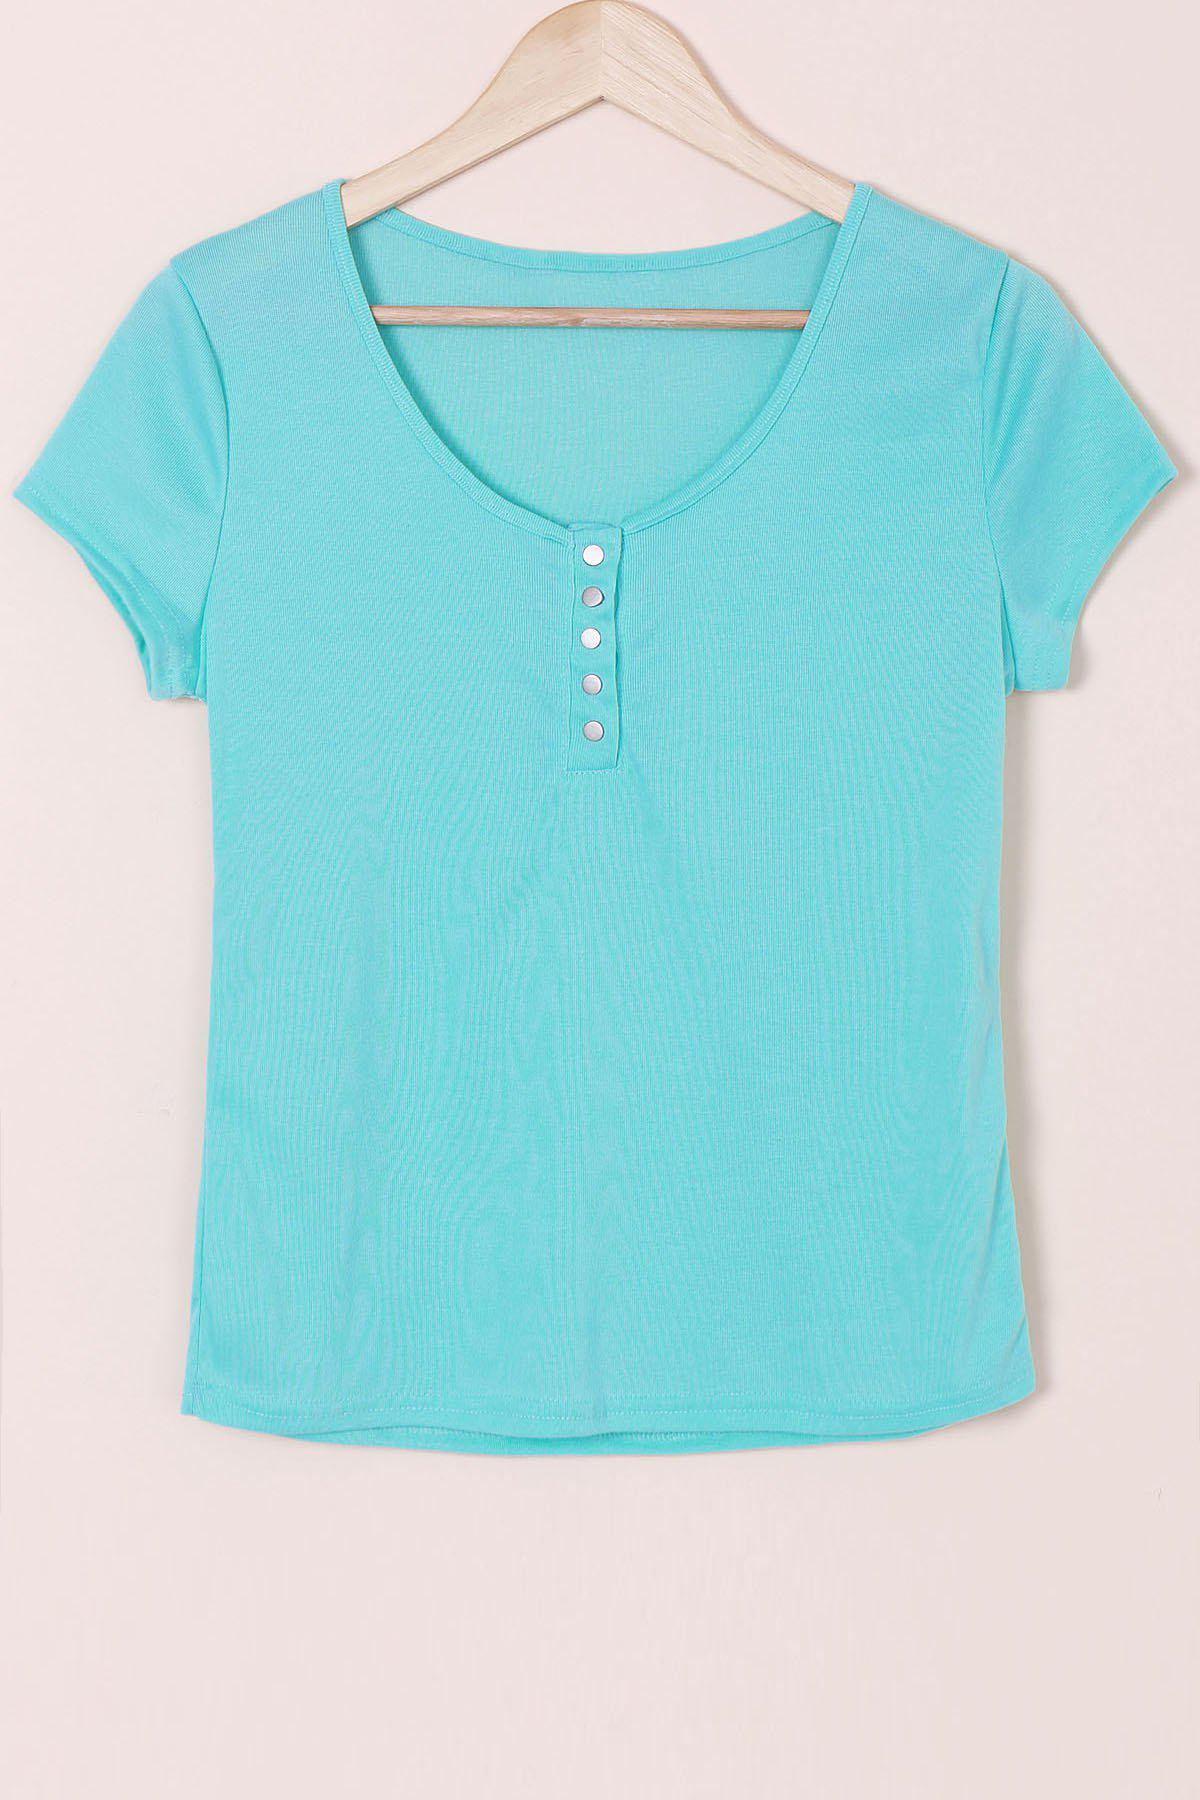 Sexy Scoop Neck Short Sleeve Solid Color Slimming Women's T-Shirt - BLUE S